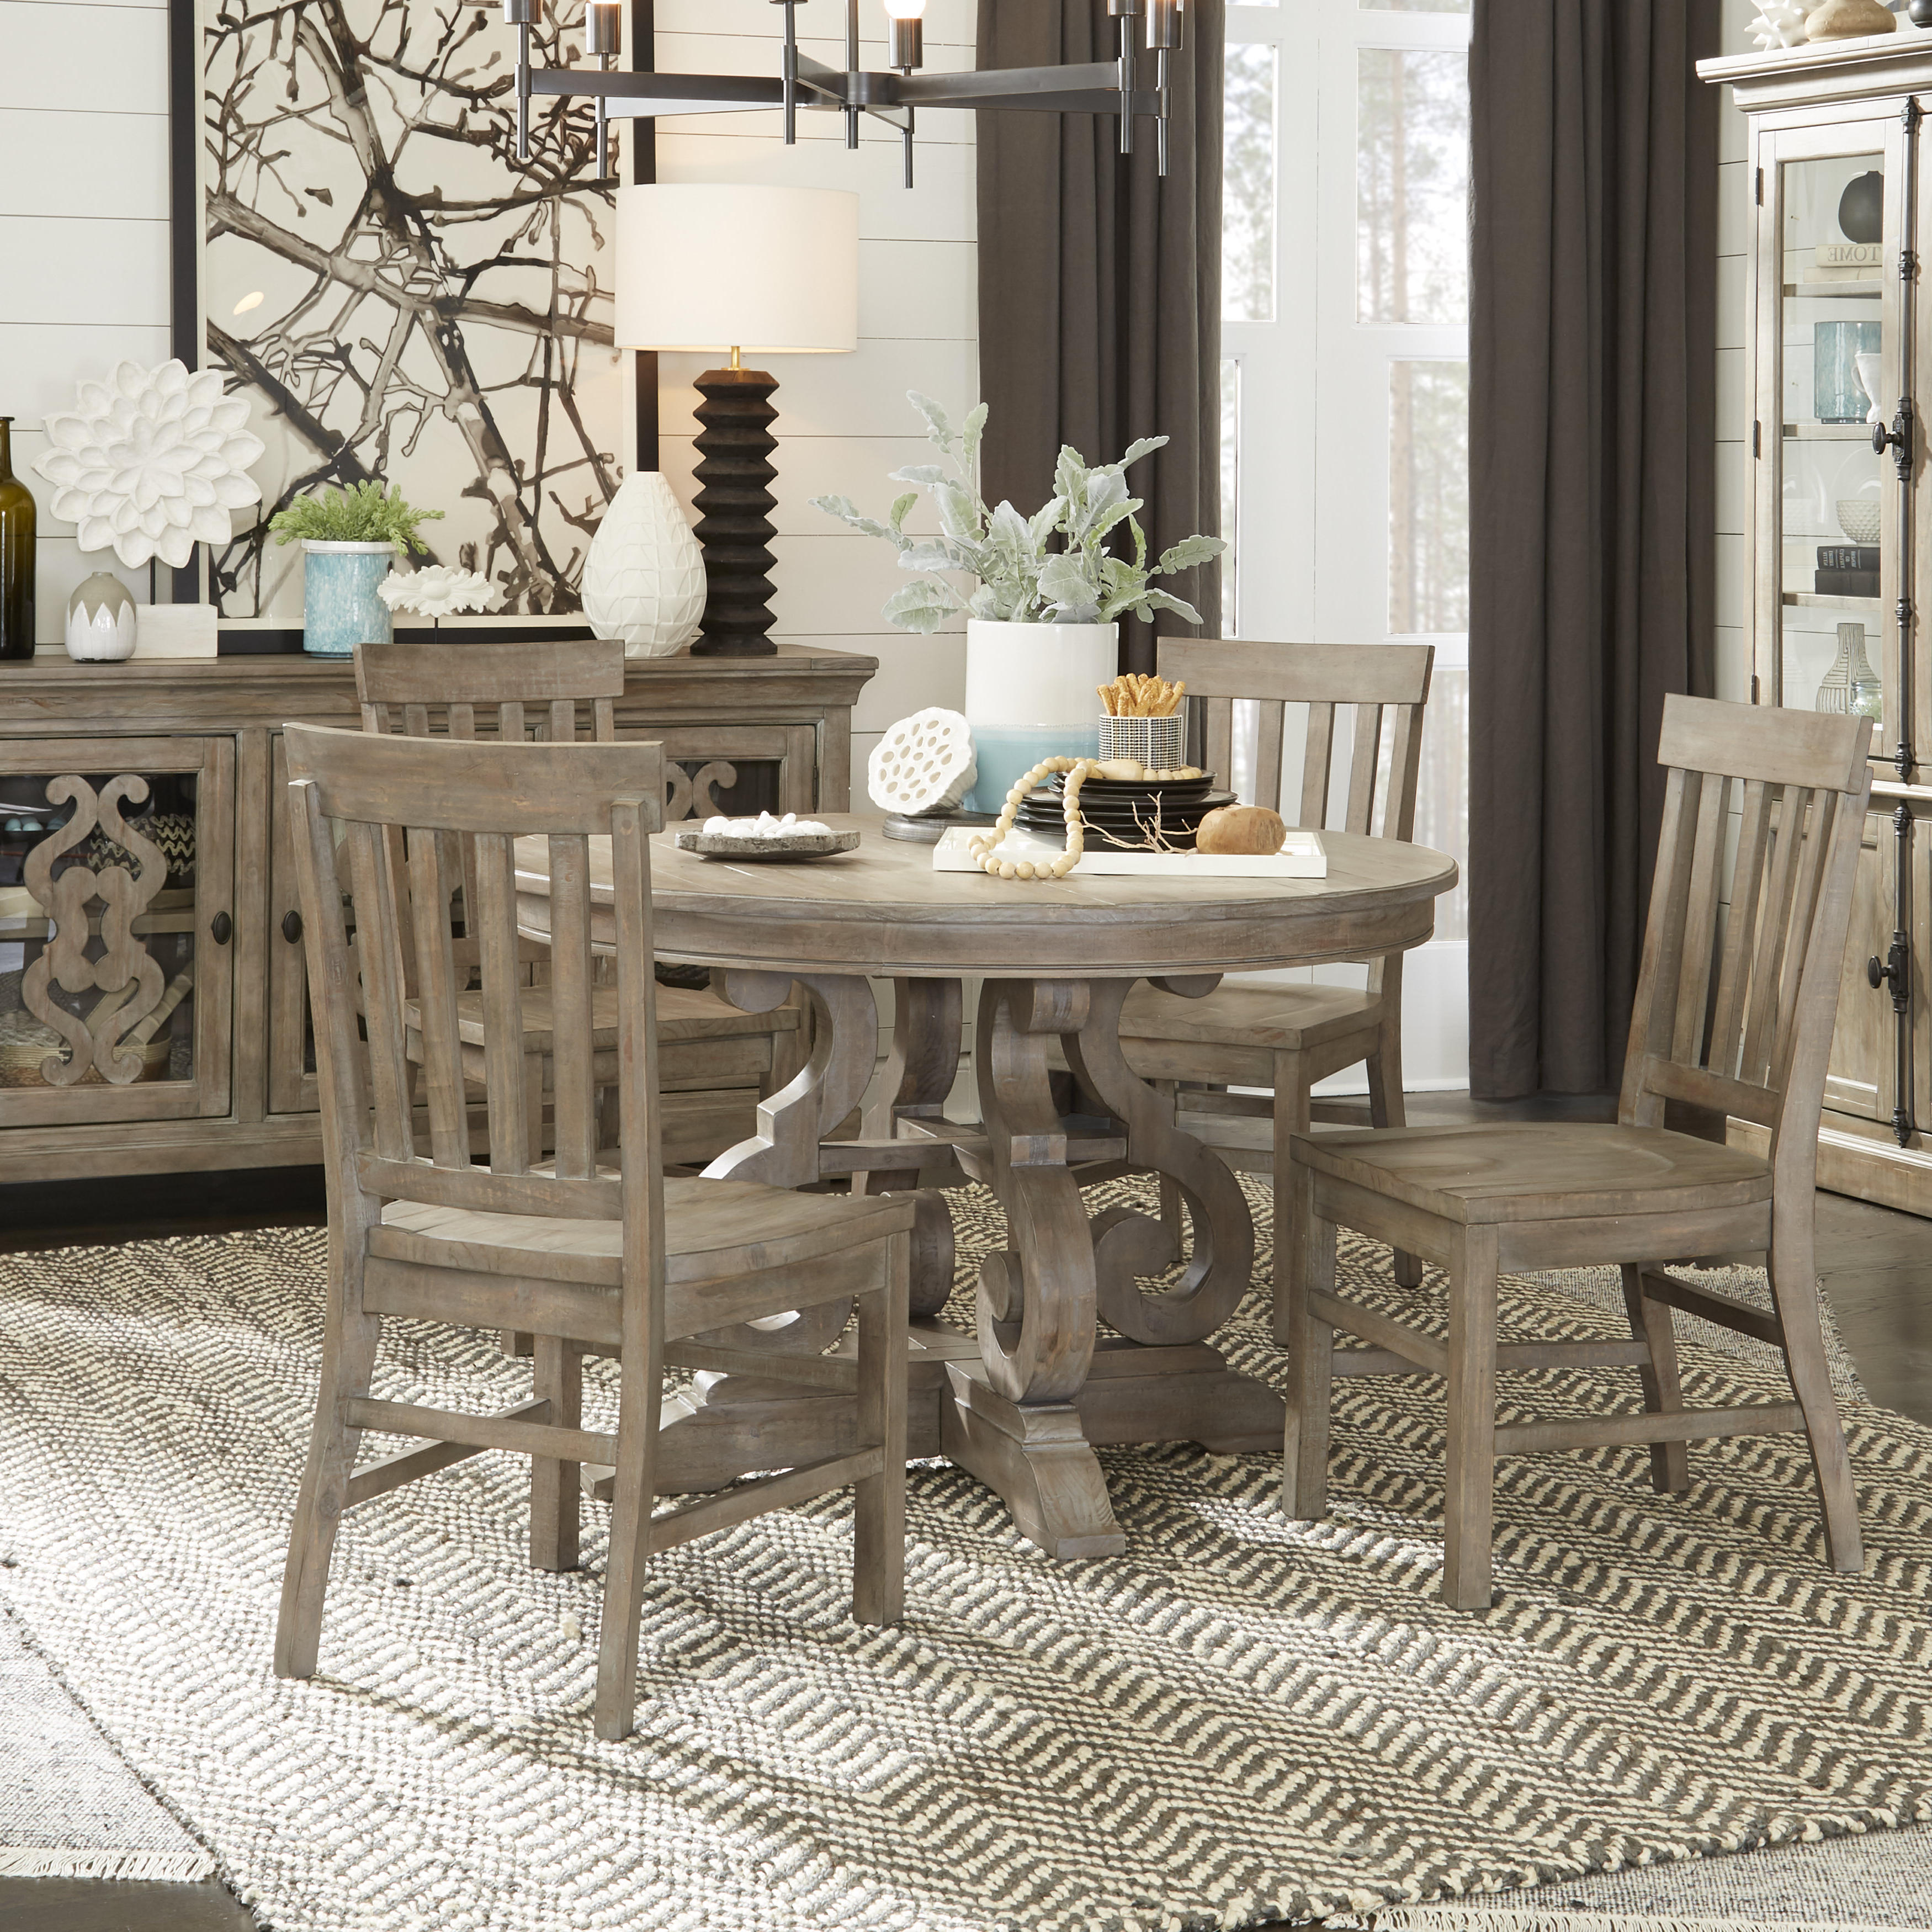 Famous Sundberg 5 Piece Solid Wood Dining Sets With Regard To Greyleigh Ellenton 5 Piece Solid Wood Dining Set & Reviews (View 9 of 25)